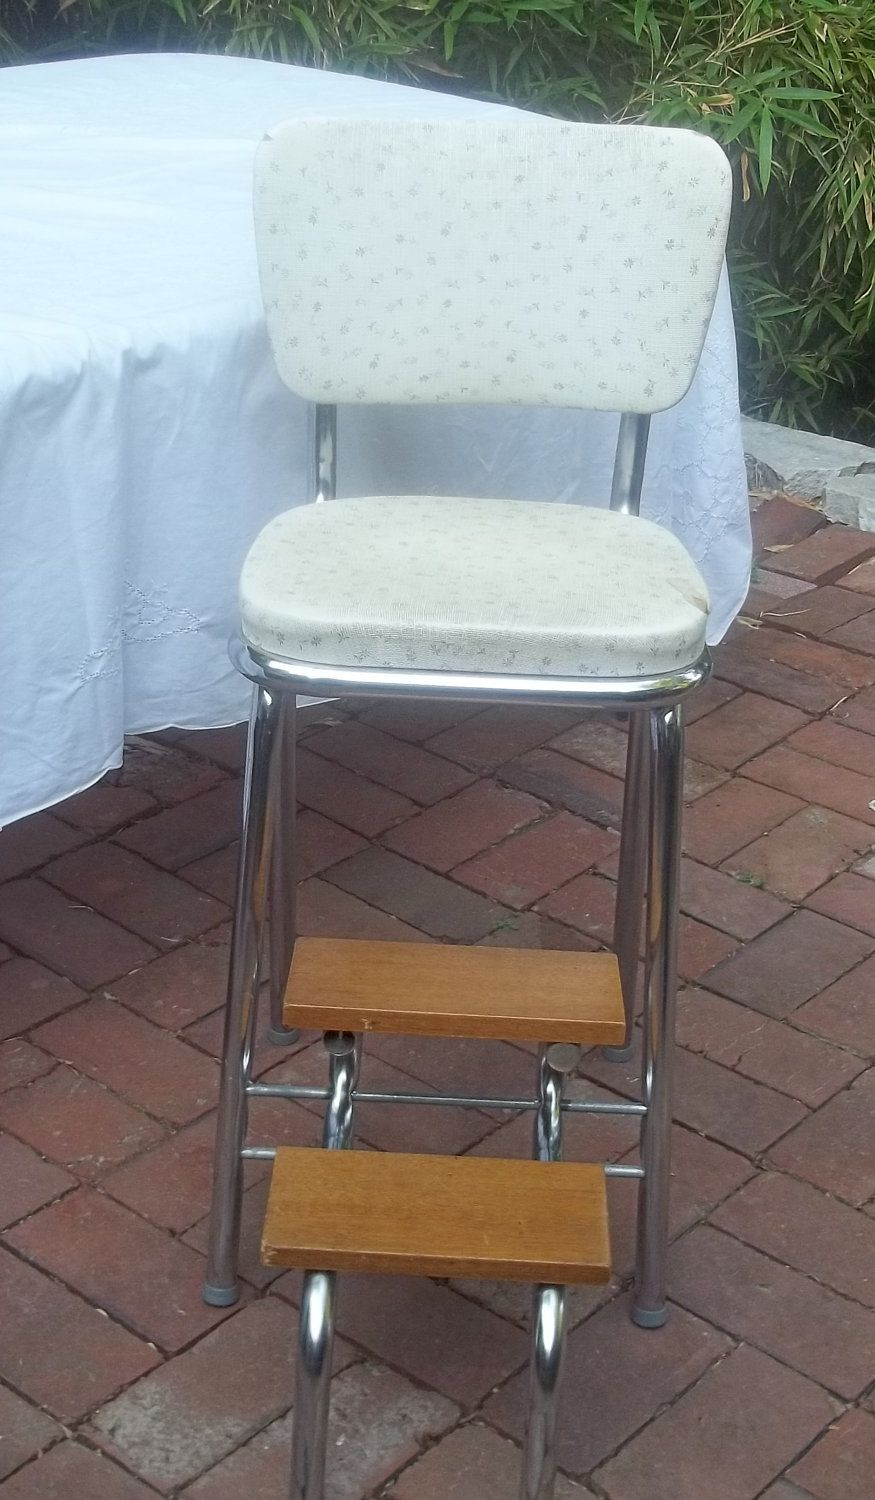 Vintage folding step stool chair - Vintage Shabby Kitchen Step Stool Chair Wood Steps Fold Up Unusual Old Style Has